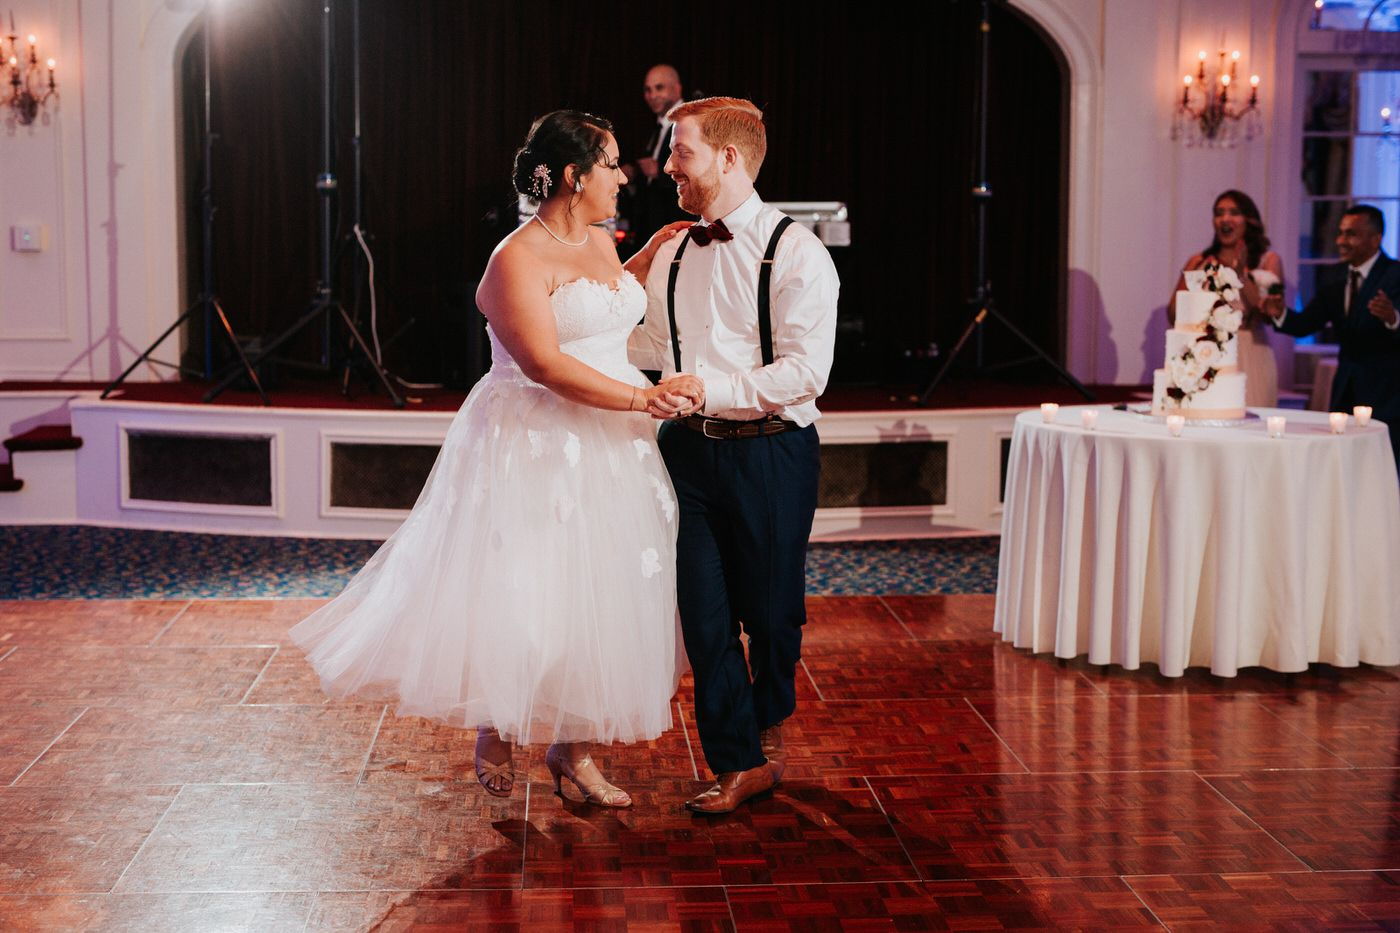 Ana Sean Multicultural New Hampshire Wedding Diana Ascarrunz Photography Portsmouth Wedding Austin Wedding Photographer Creative Wedding Photo